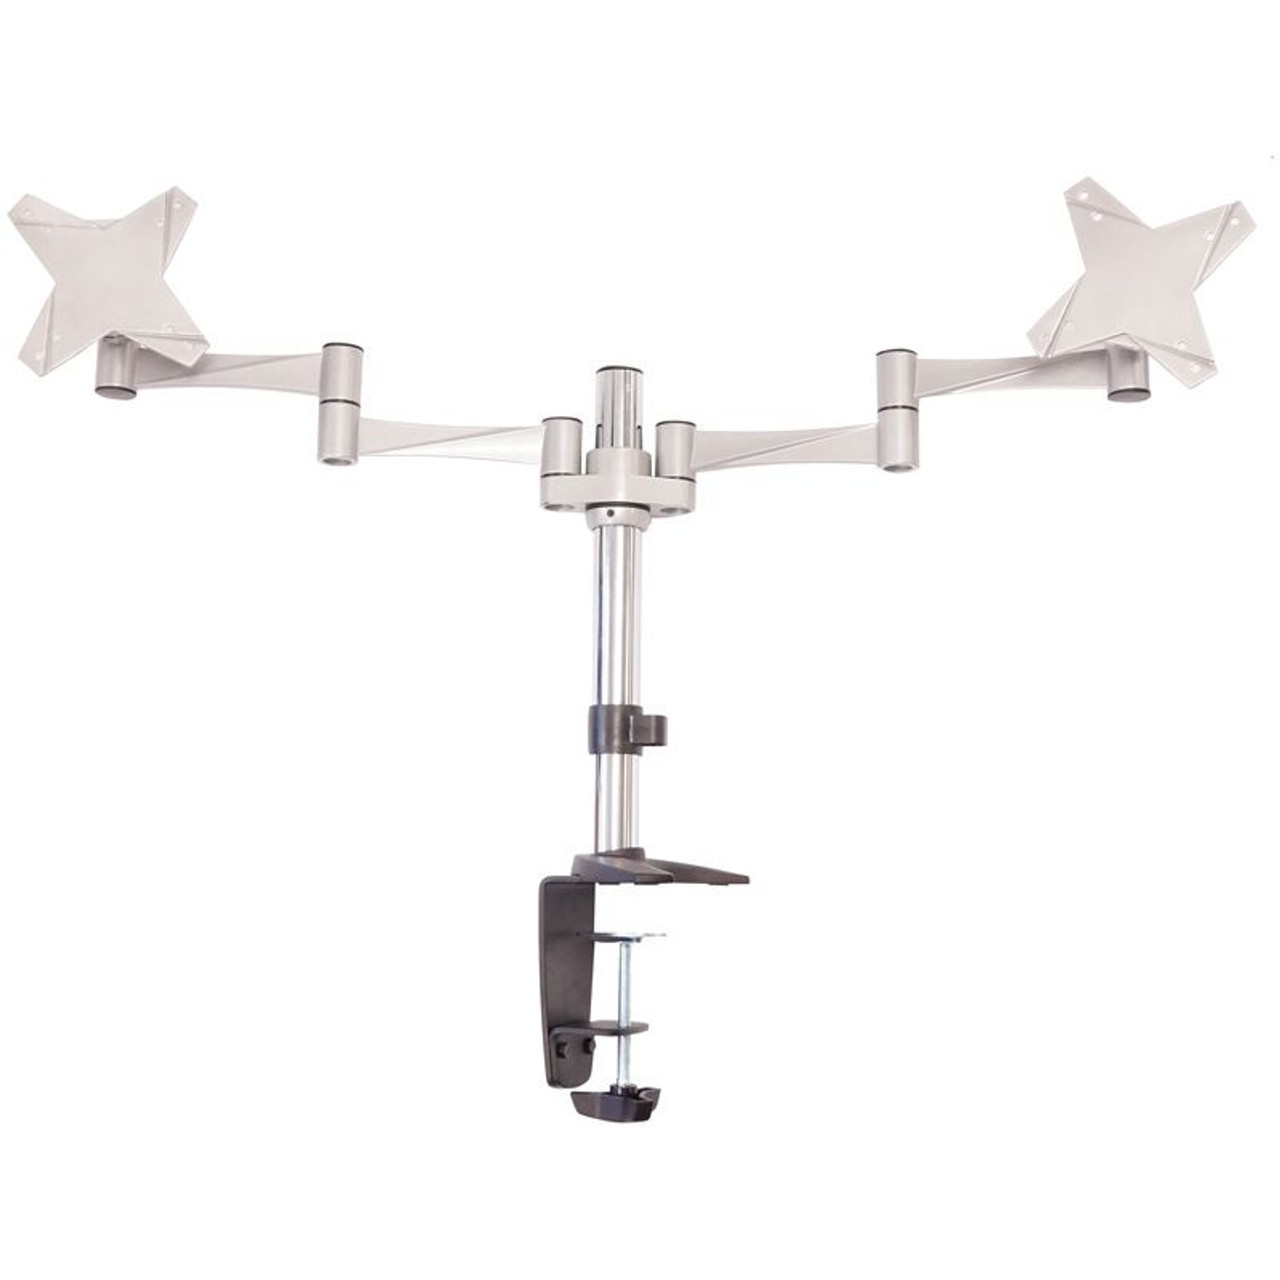 Product image for Astrotek Monitor Stand Desk Mount 43cm Arm for Dual Screens 13-29in | CX Computer Superstore